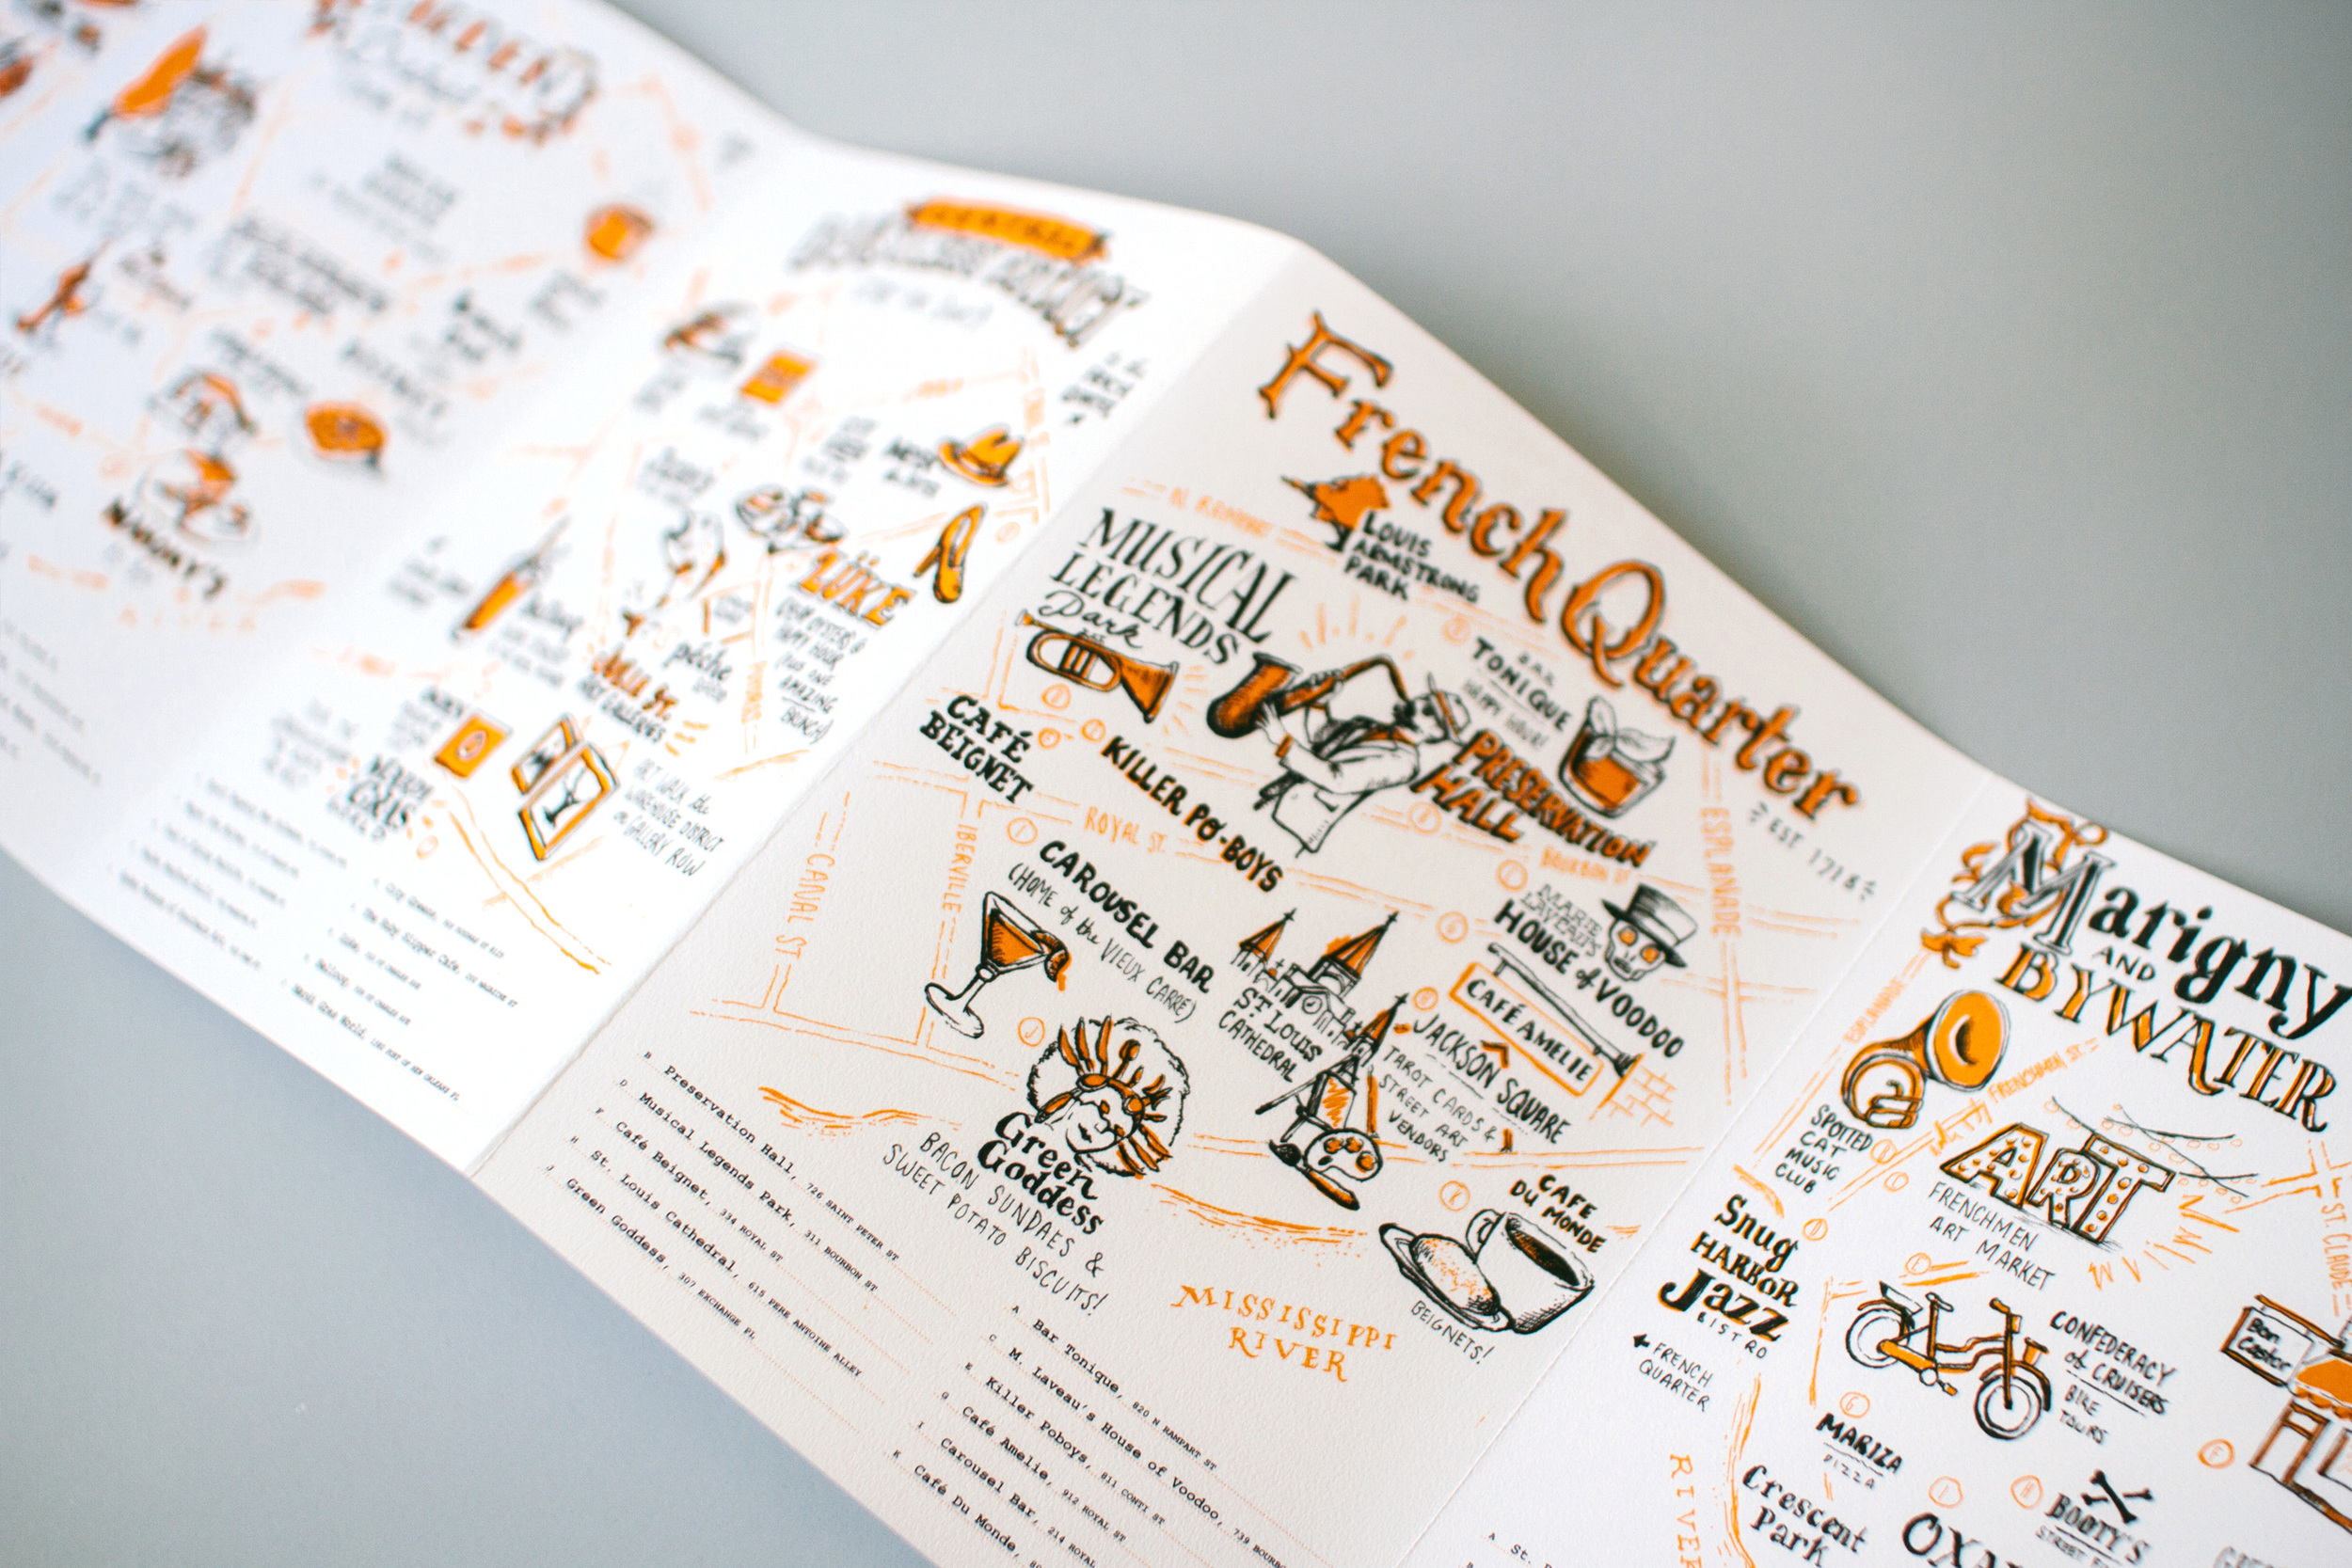 All of the New Orleans illustrated maps revealed with a Focus on the French Quarter neighborhood guide.